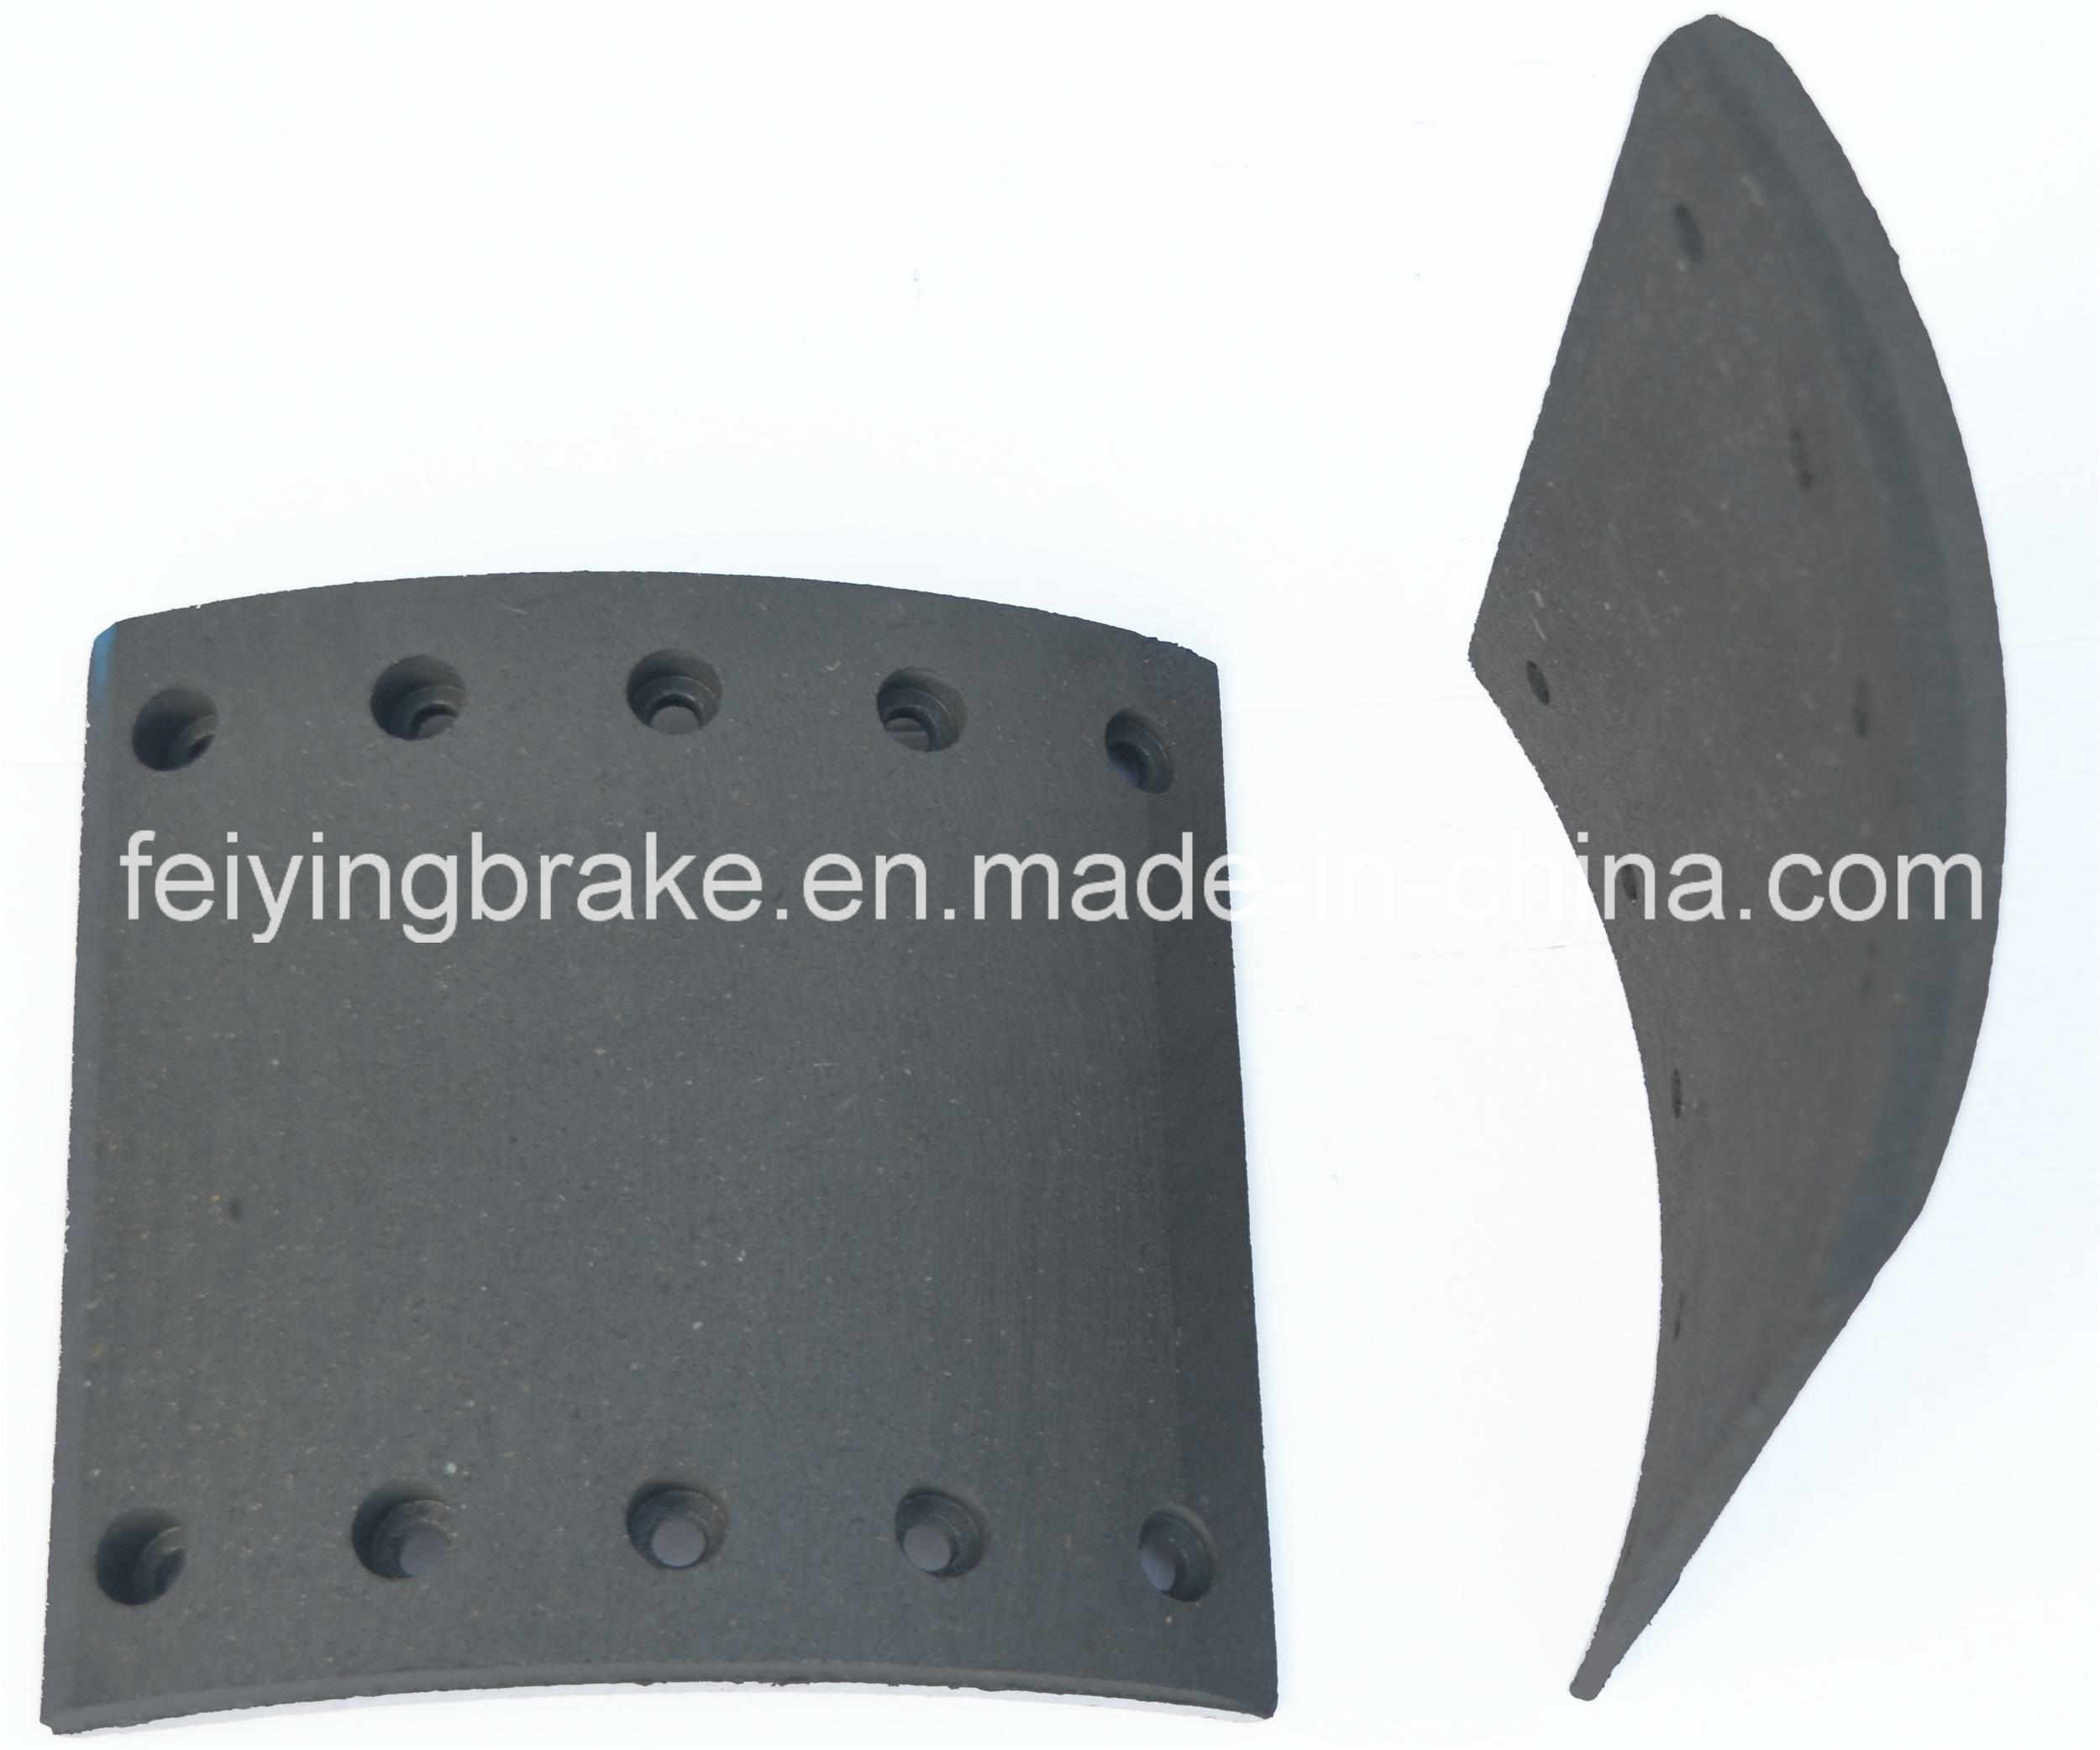 Asbestos Free Brake Lining for Heavy Duty Truck (WVA: 19094 BFMC: BC/37/1) Inculding Semi-Metallic and Ceramic, Carbon...Raw Material